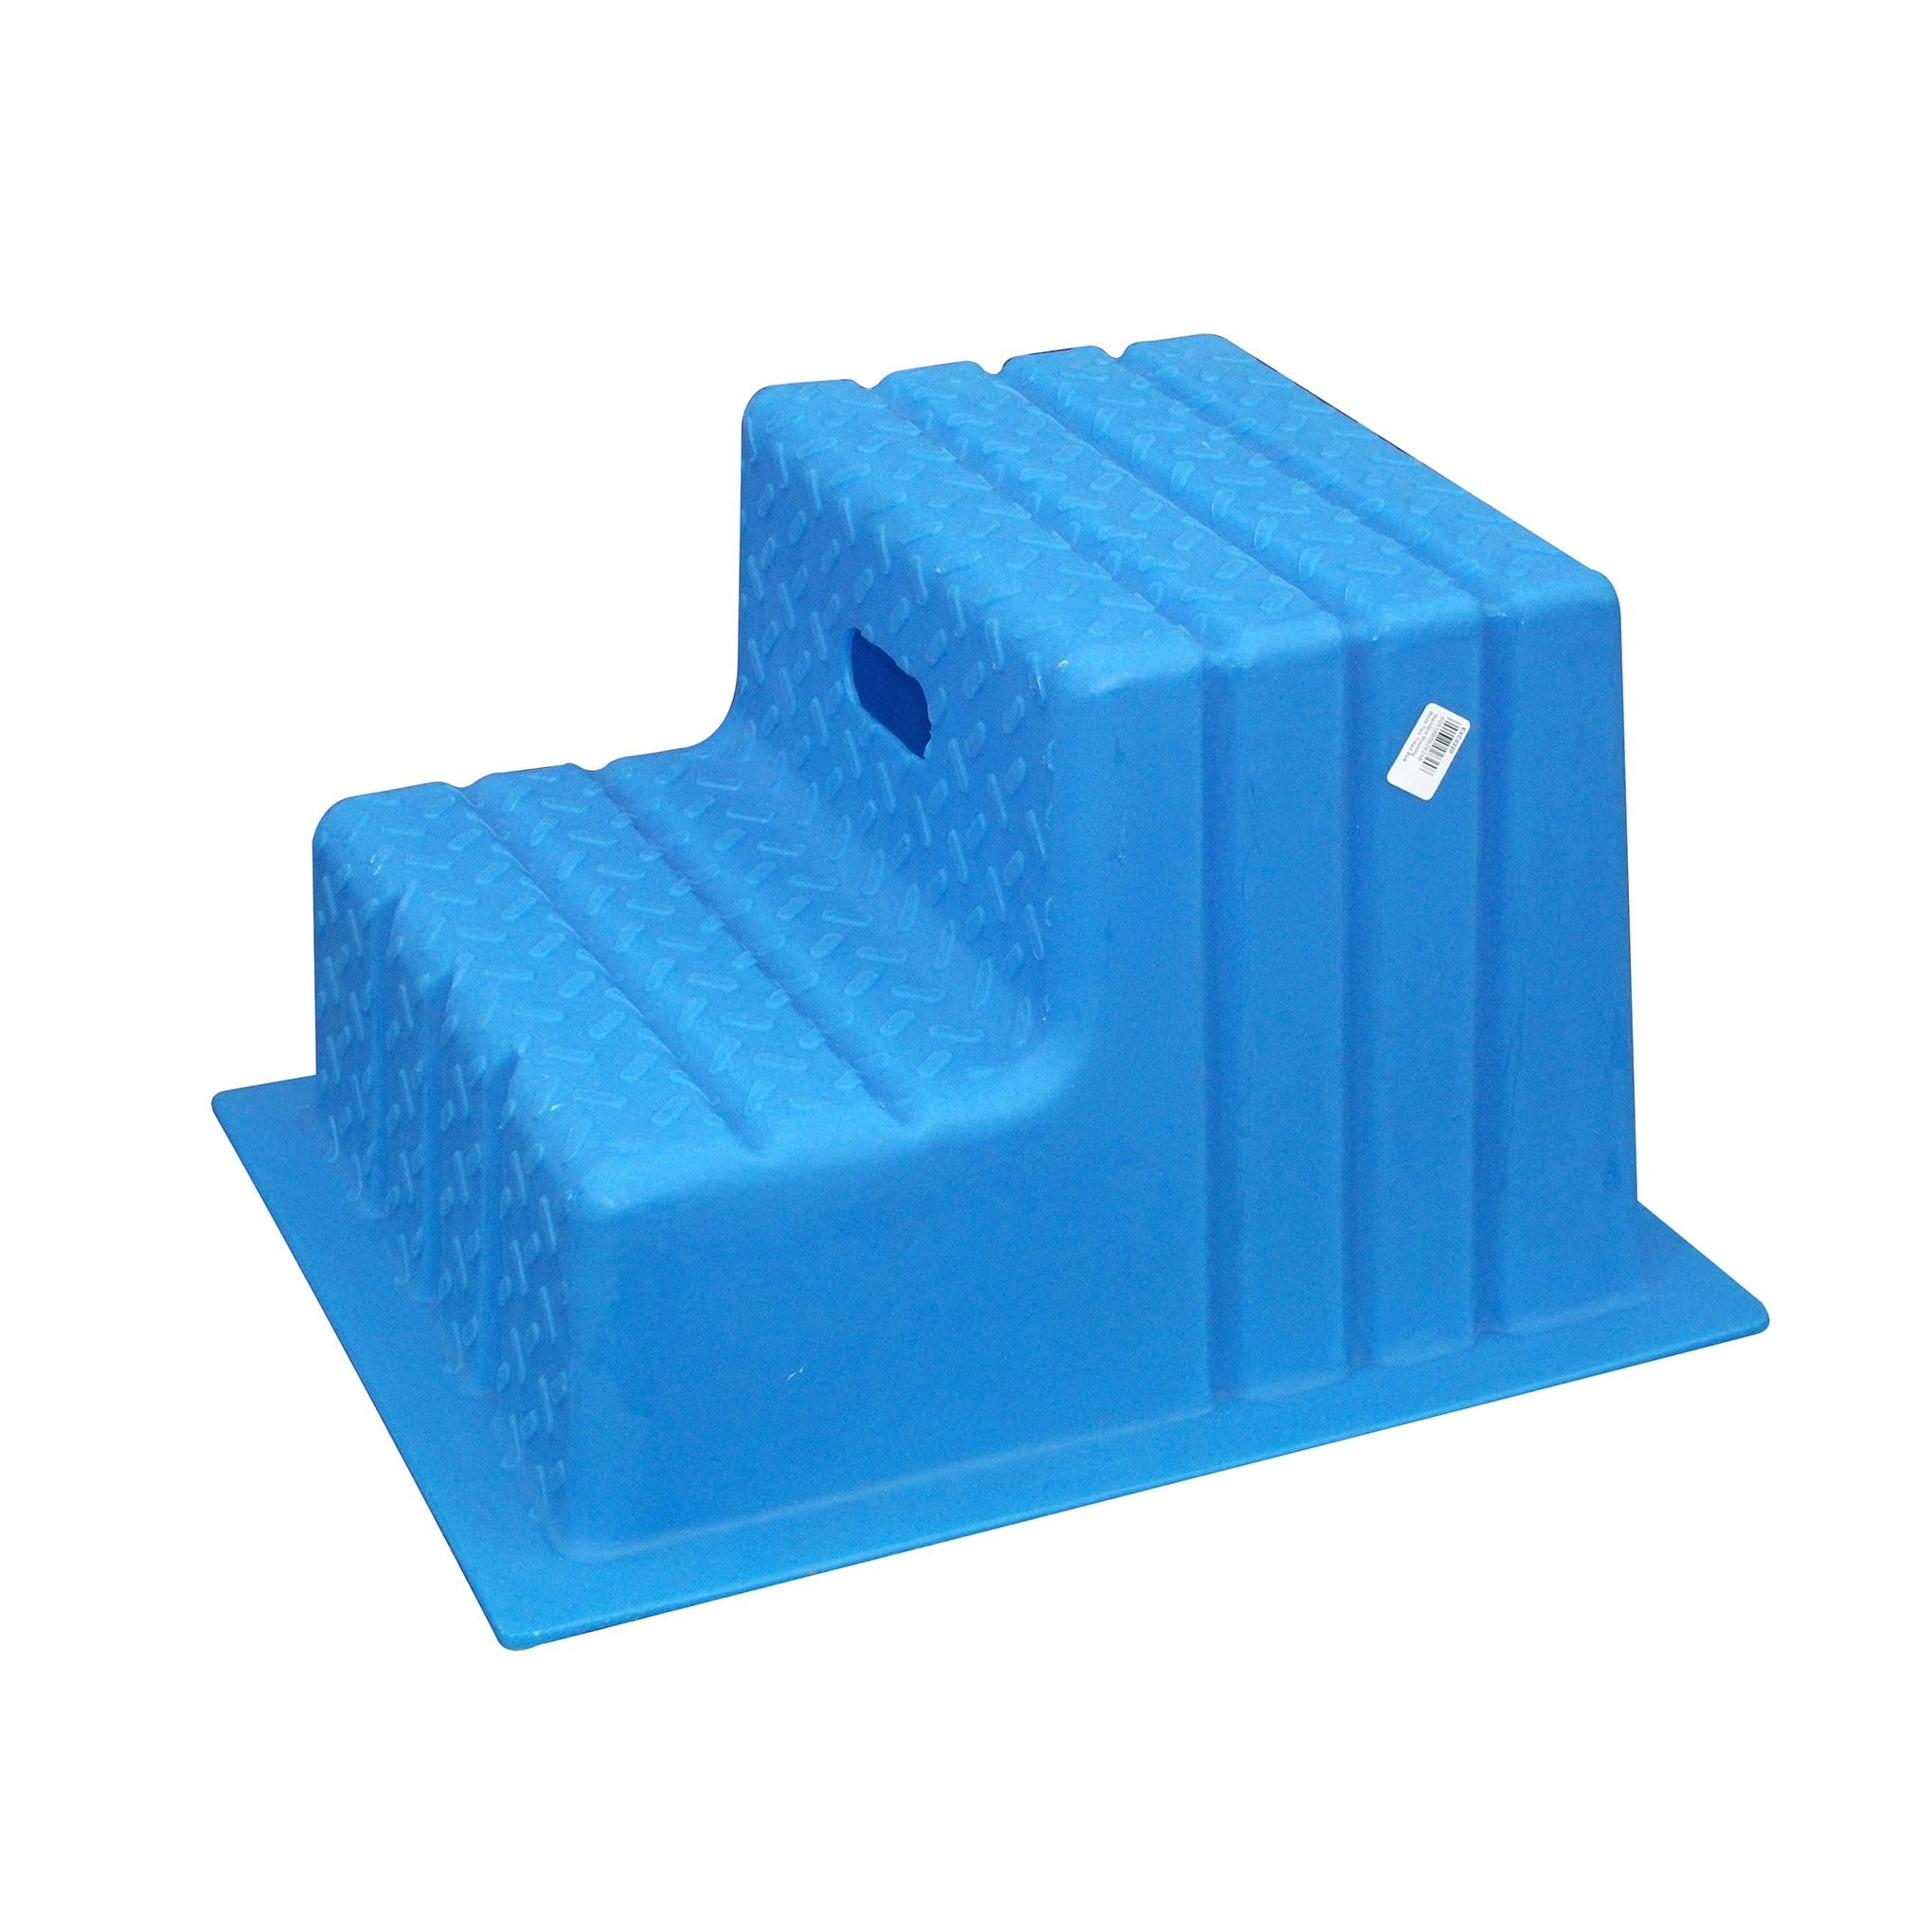 Classic Showjumps Standard Two Tread Mounting Block in Blue